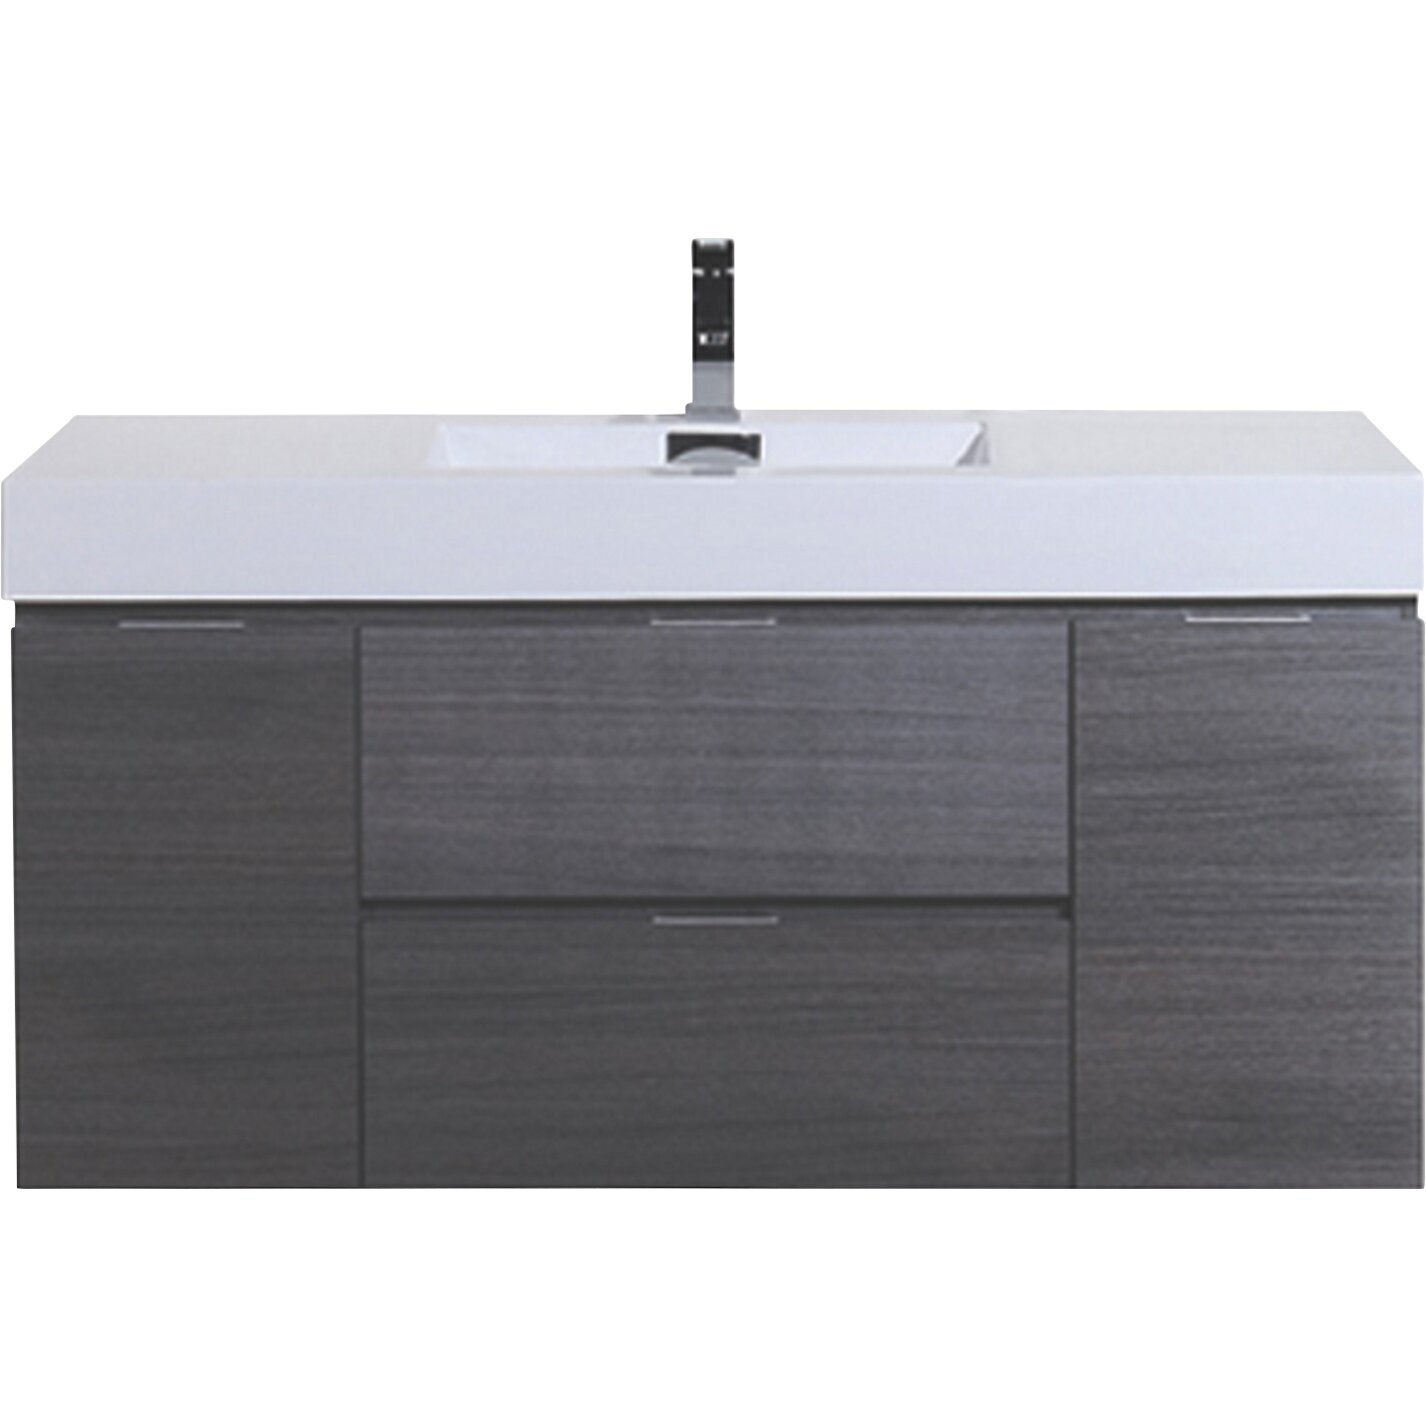 Wade logan tenafly 48 single wall mount modern bathroom vanity set reviews - Kona modern bathroom vanity set ...